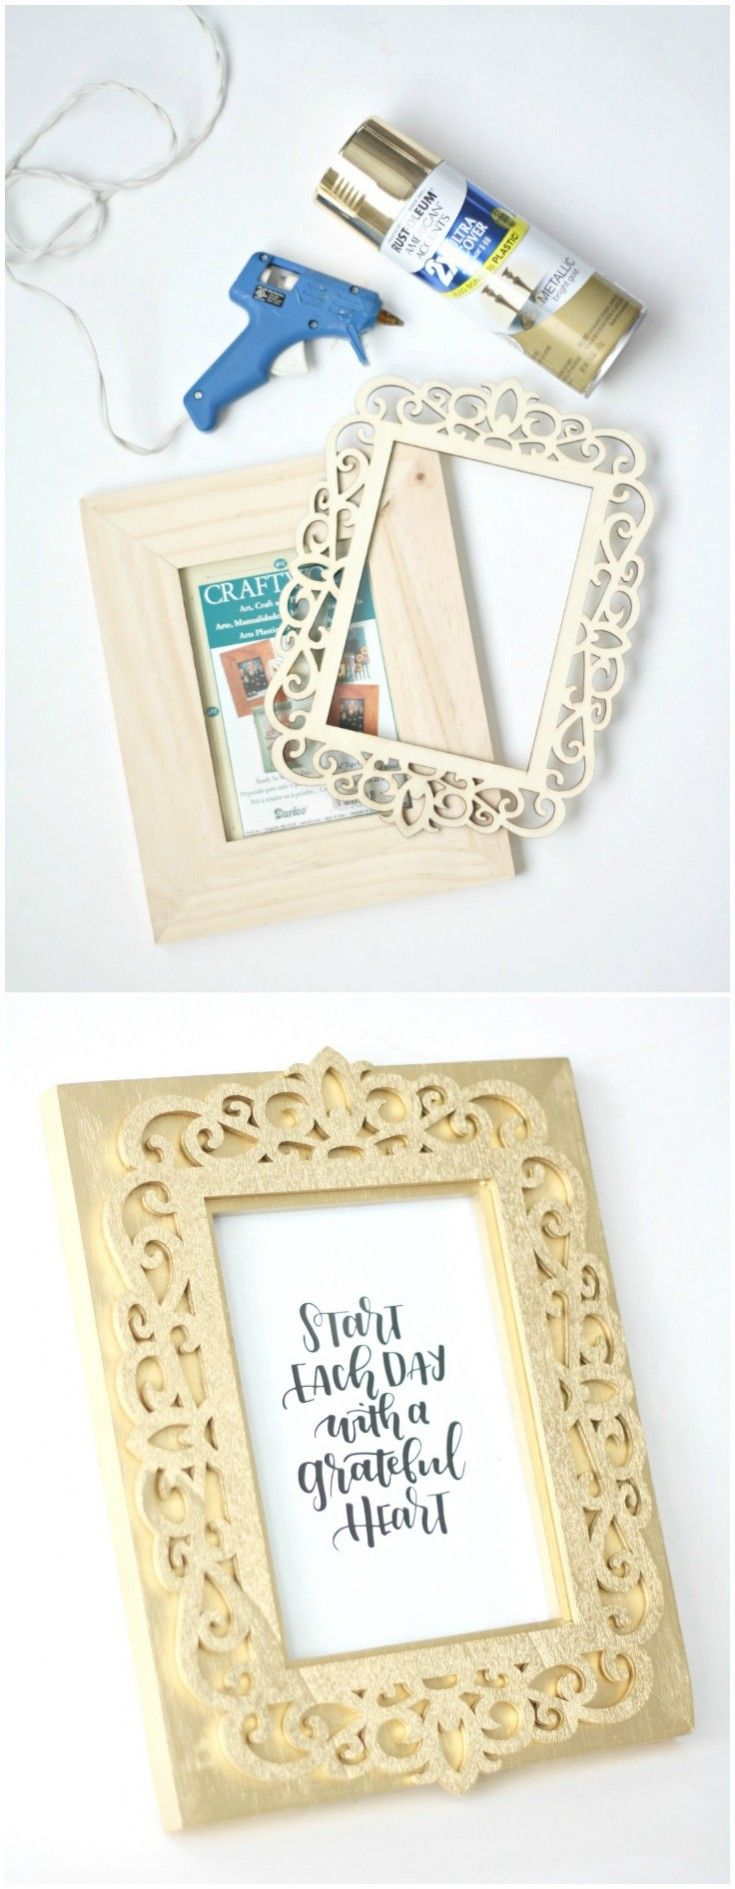 This DIY picture frame is such an eye catching project! Use spray paint to make it look like 14k gold. Very easy and very budget friendly! via @diy_candy